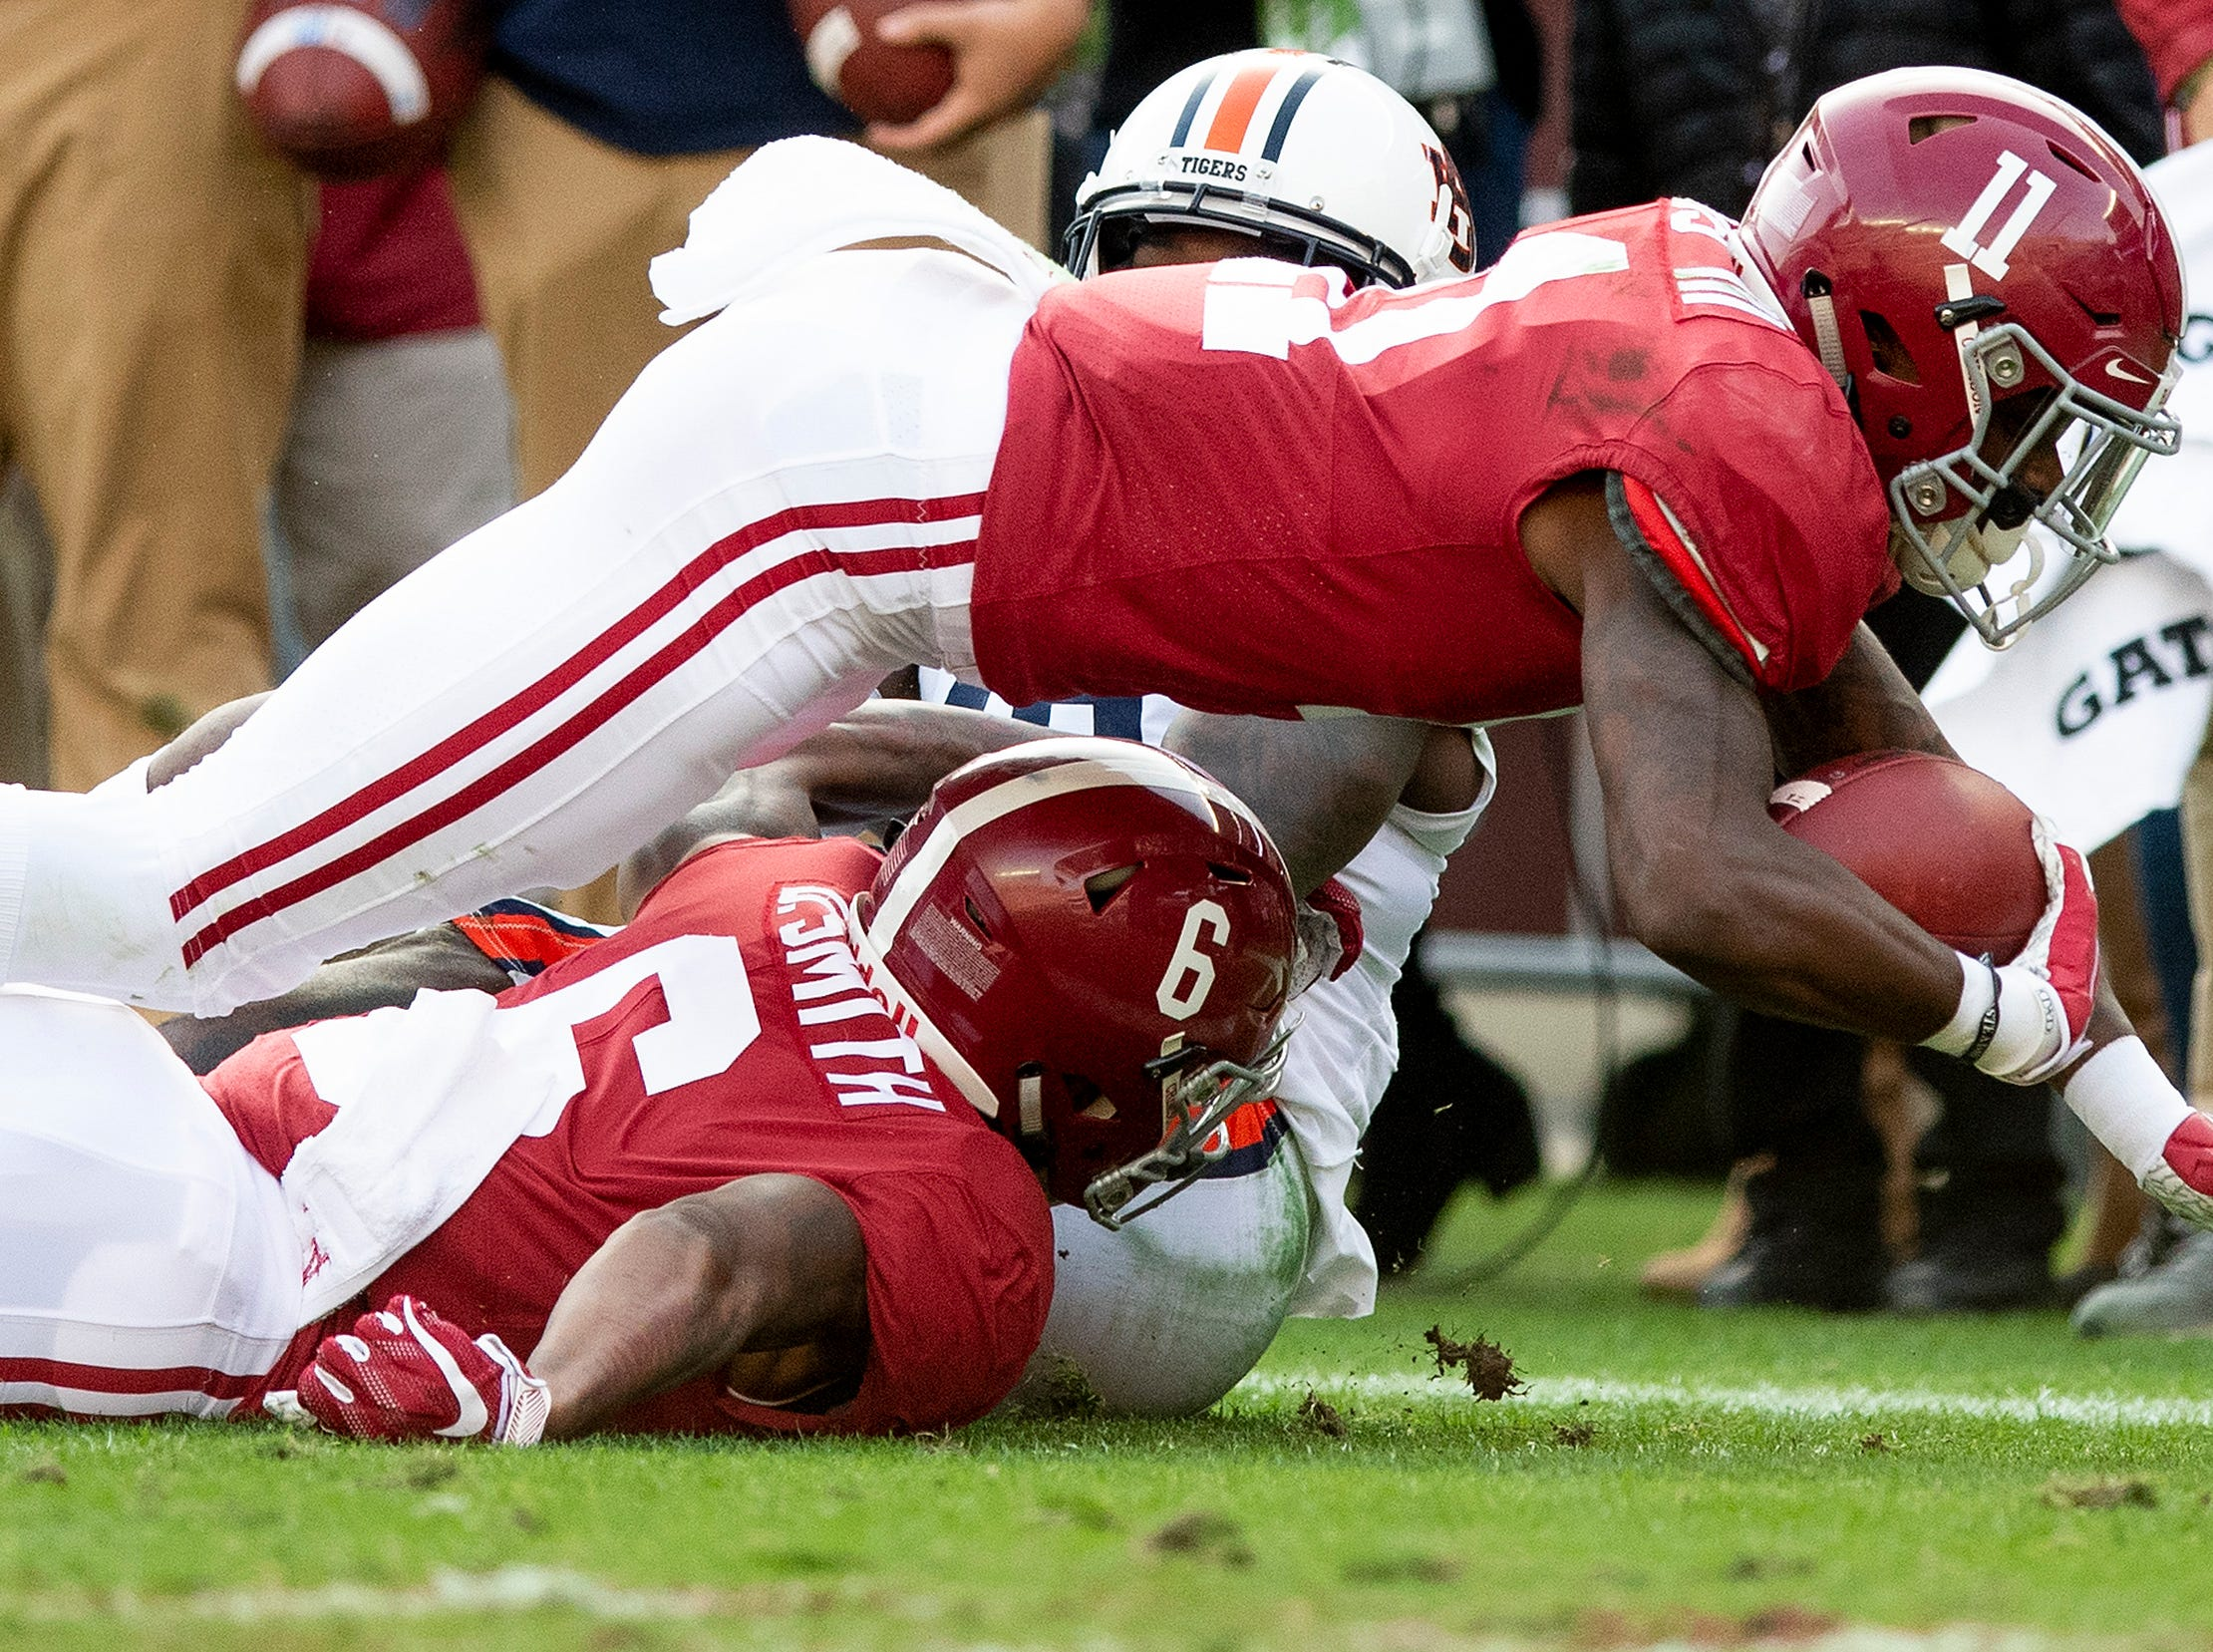 Alabama wide receiver Henry Ruggs, III, (11) dives for yardage against Auburn in first half action during the Iron Bowl at Bryant-Denny Stadium in Tuscaloosa, Ala., on Saturday November 24, 2018.